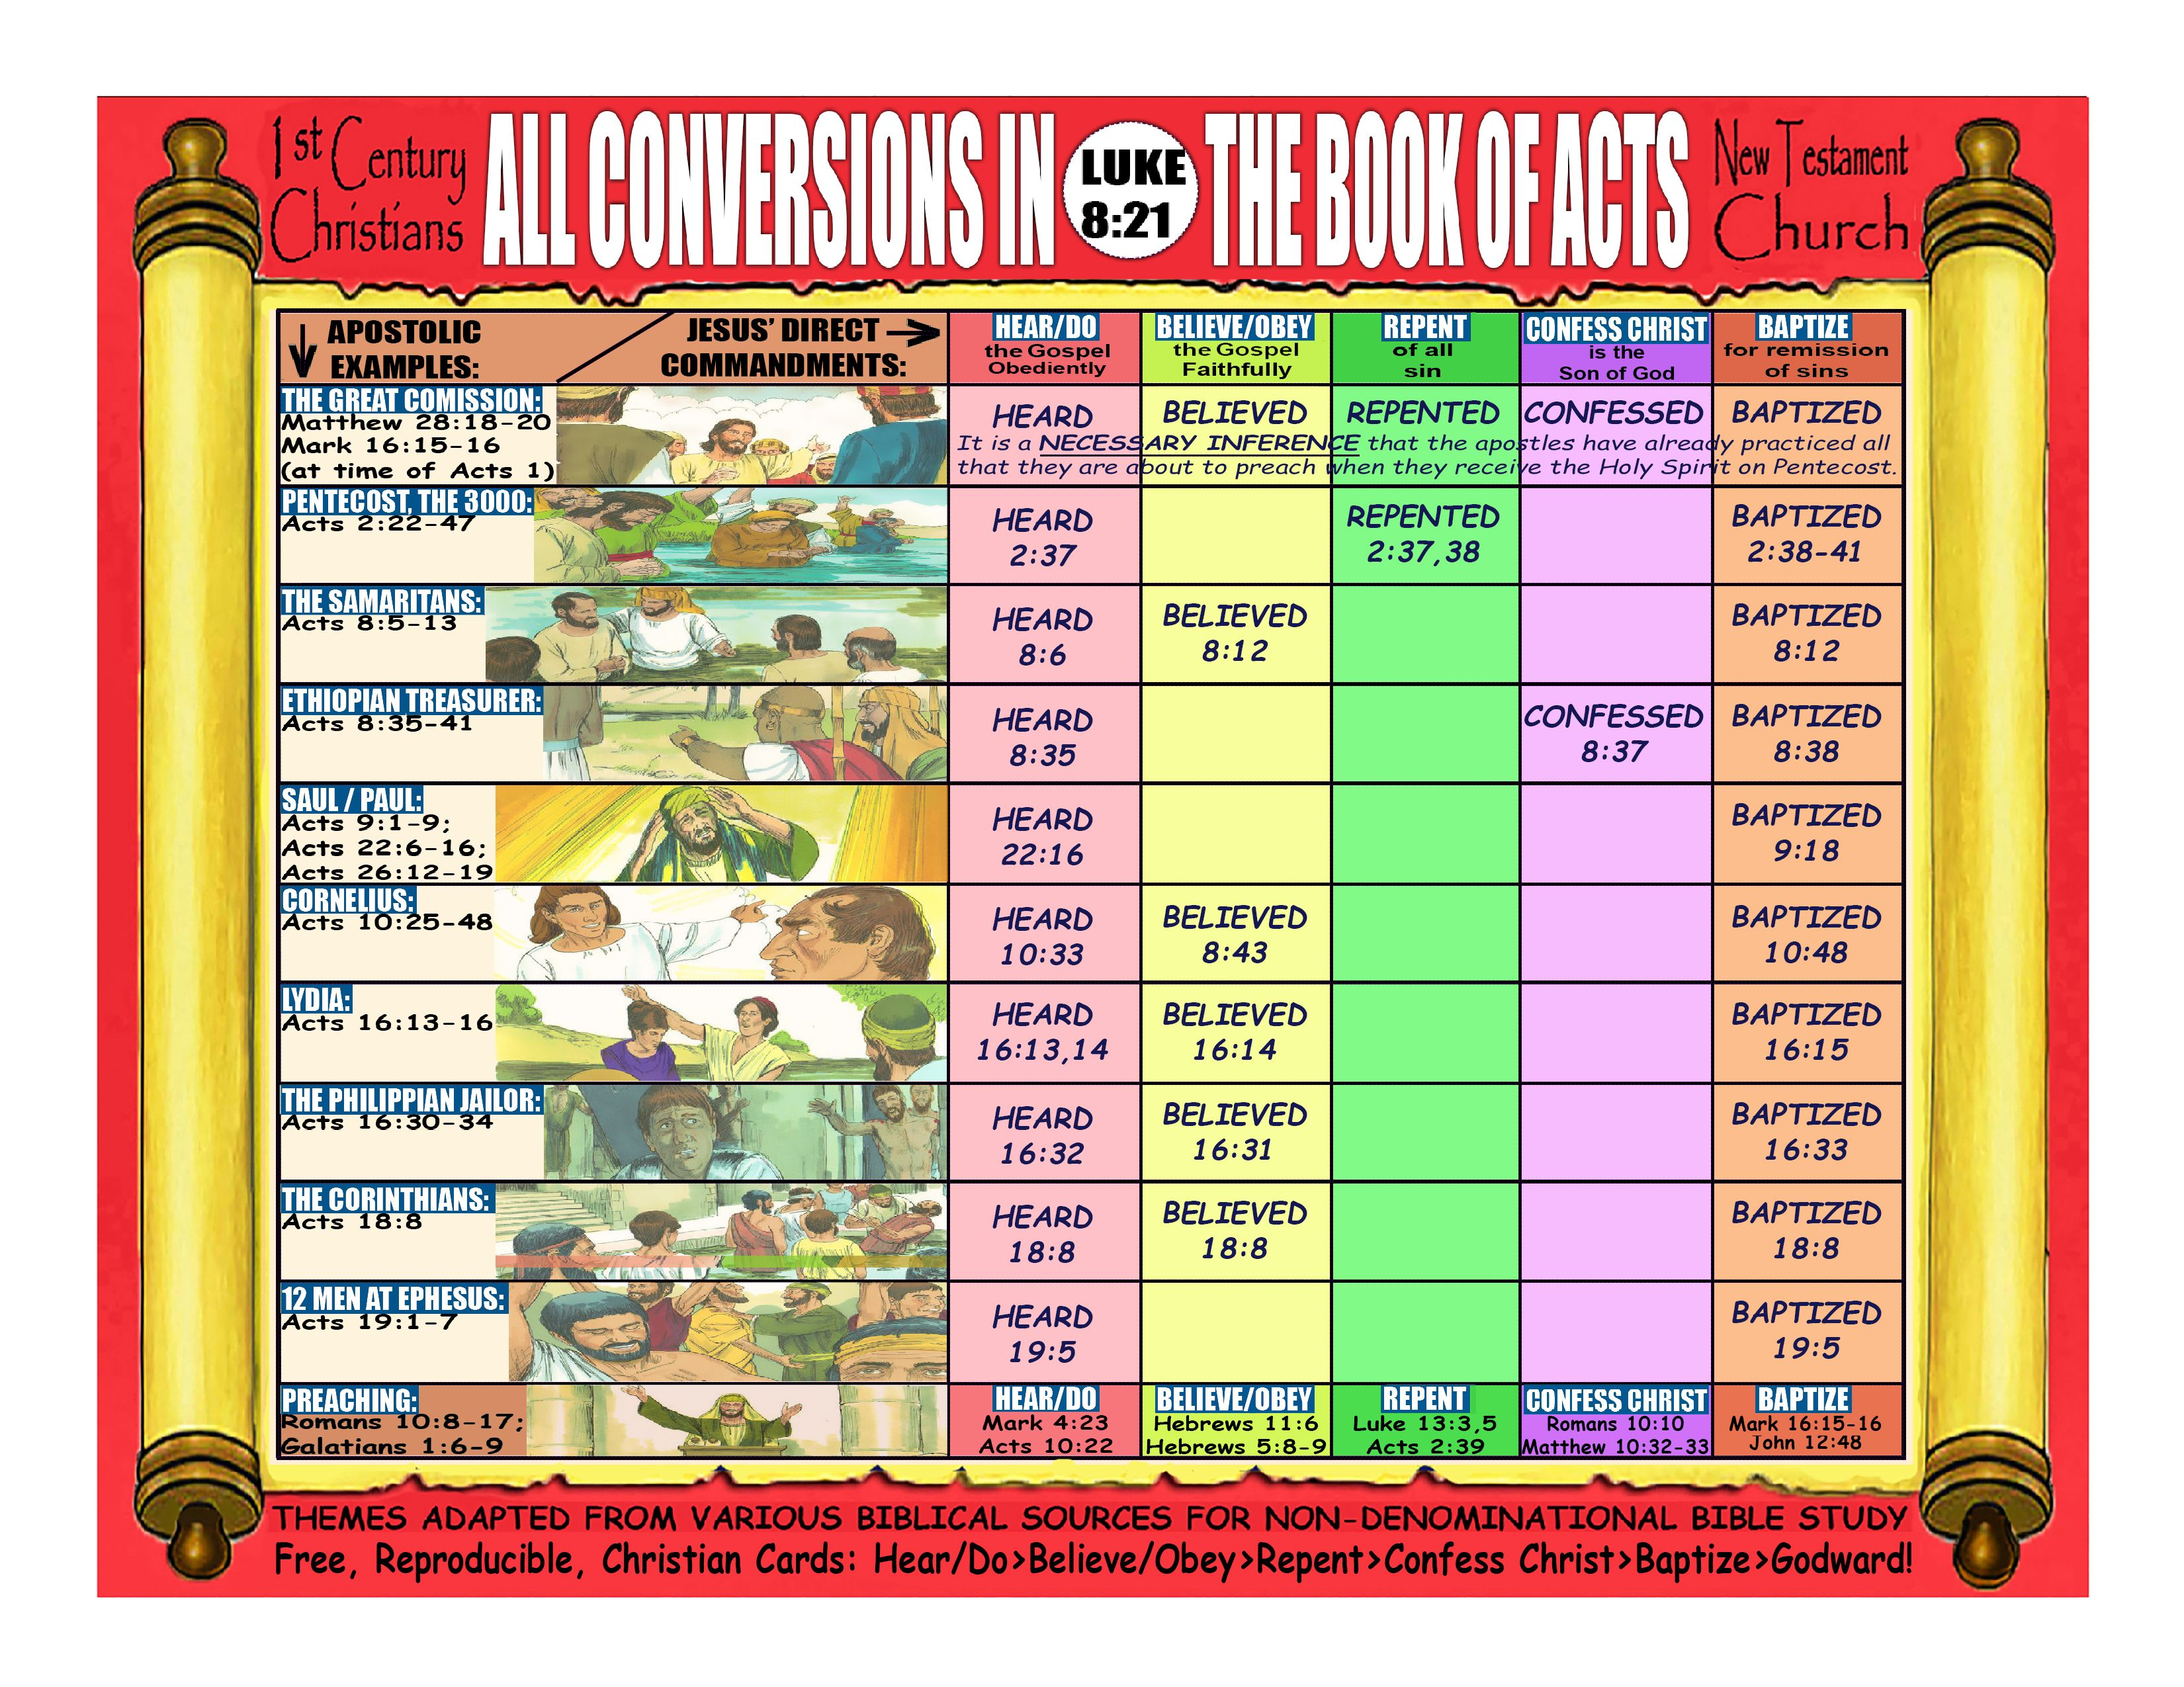 All conversions in the book of acts in 2020 bible facts